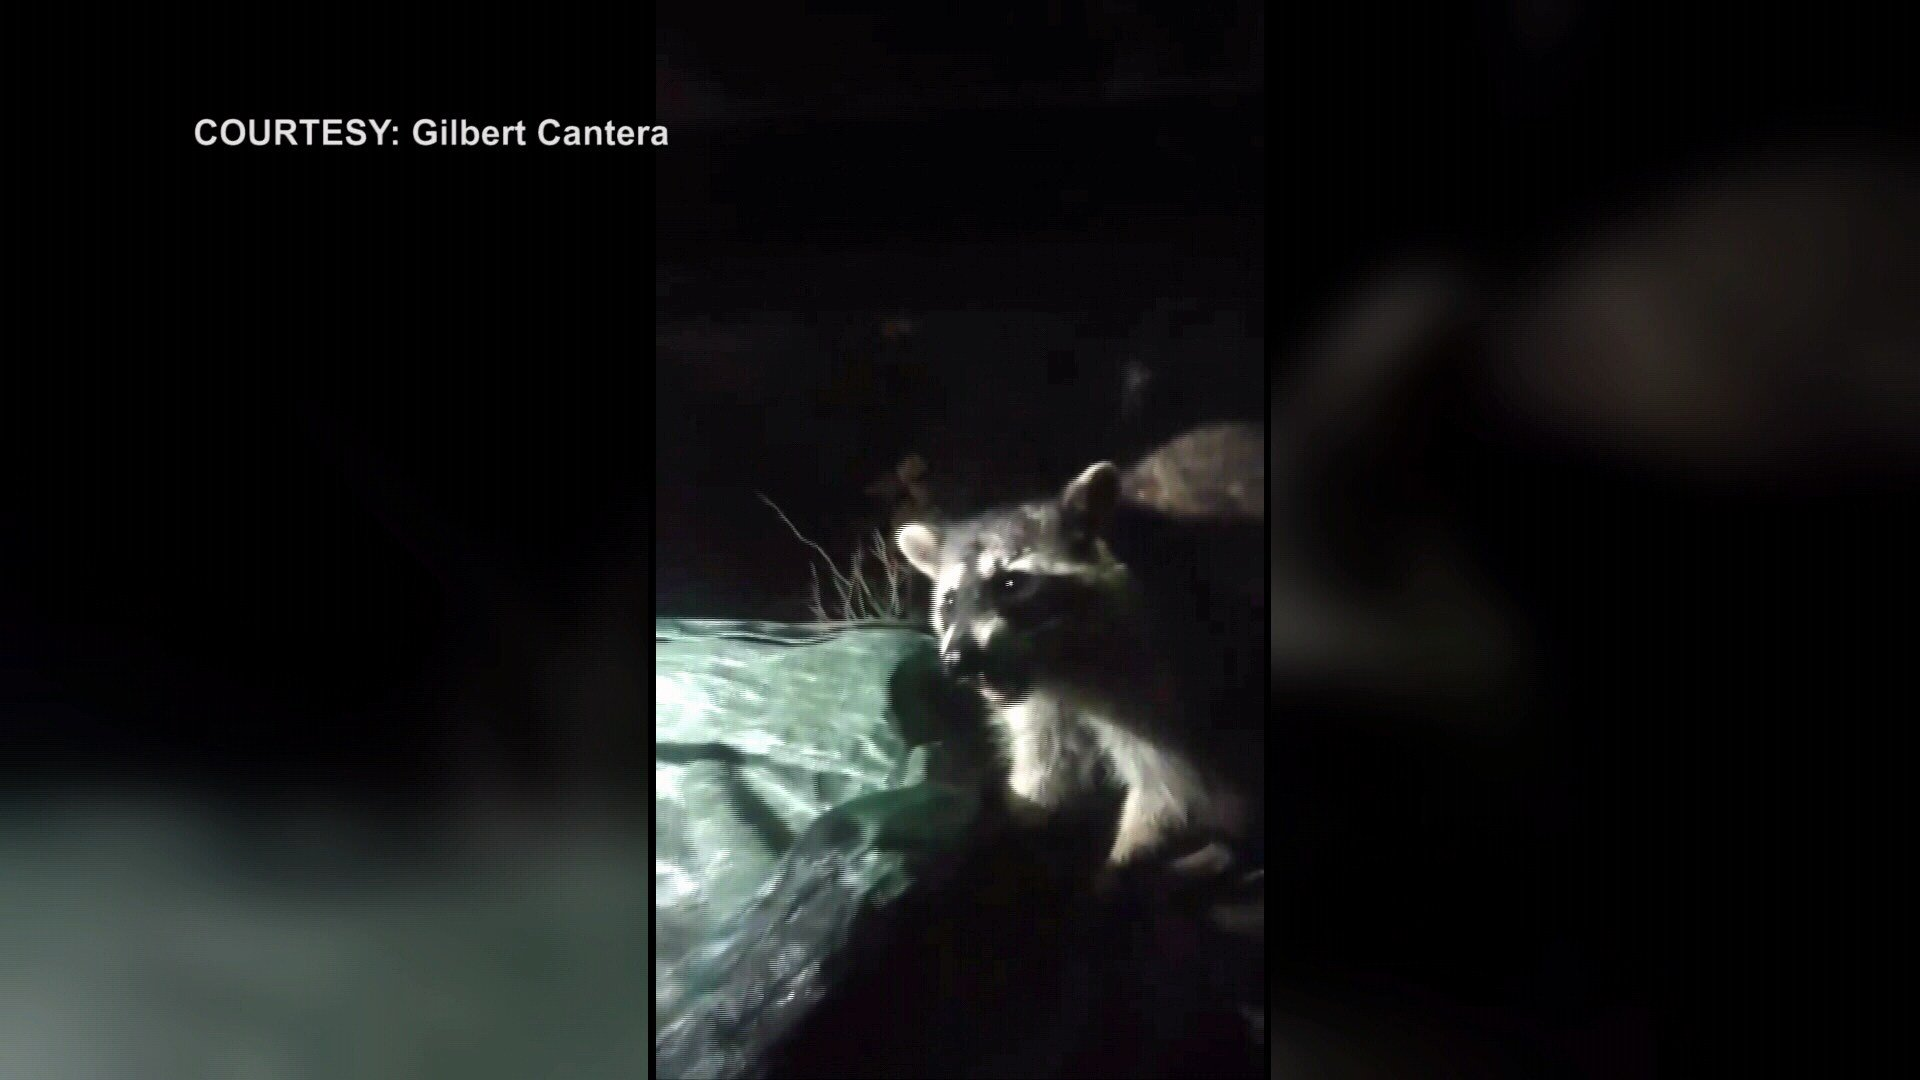 Gilbert Cantera found this raccoon outside of his home Thursday morning.